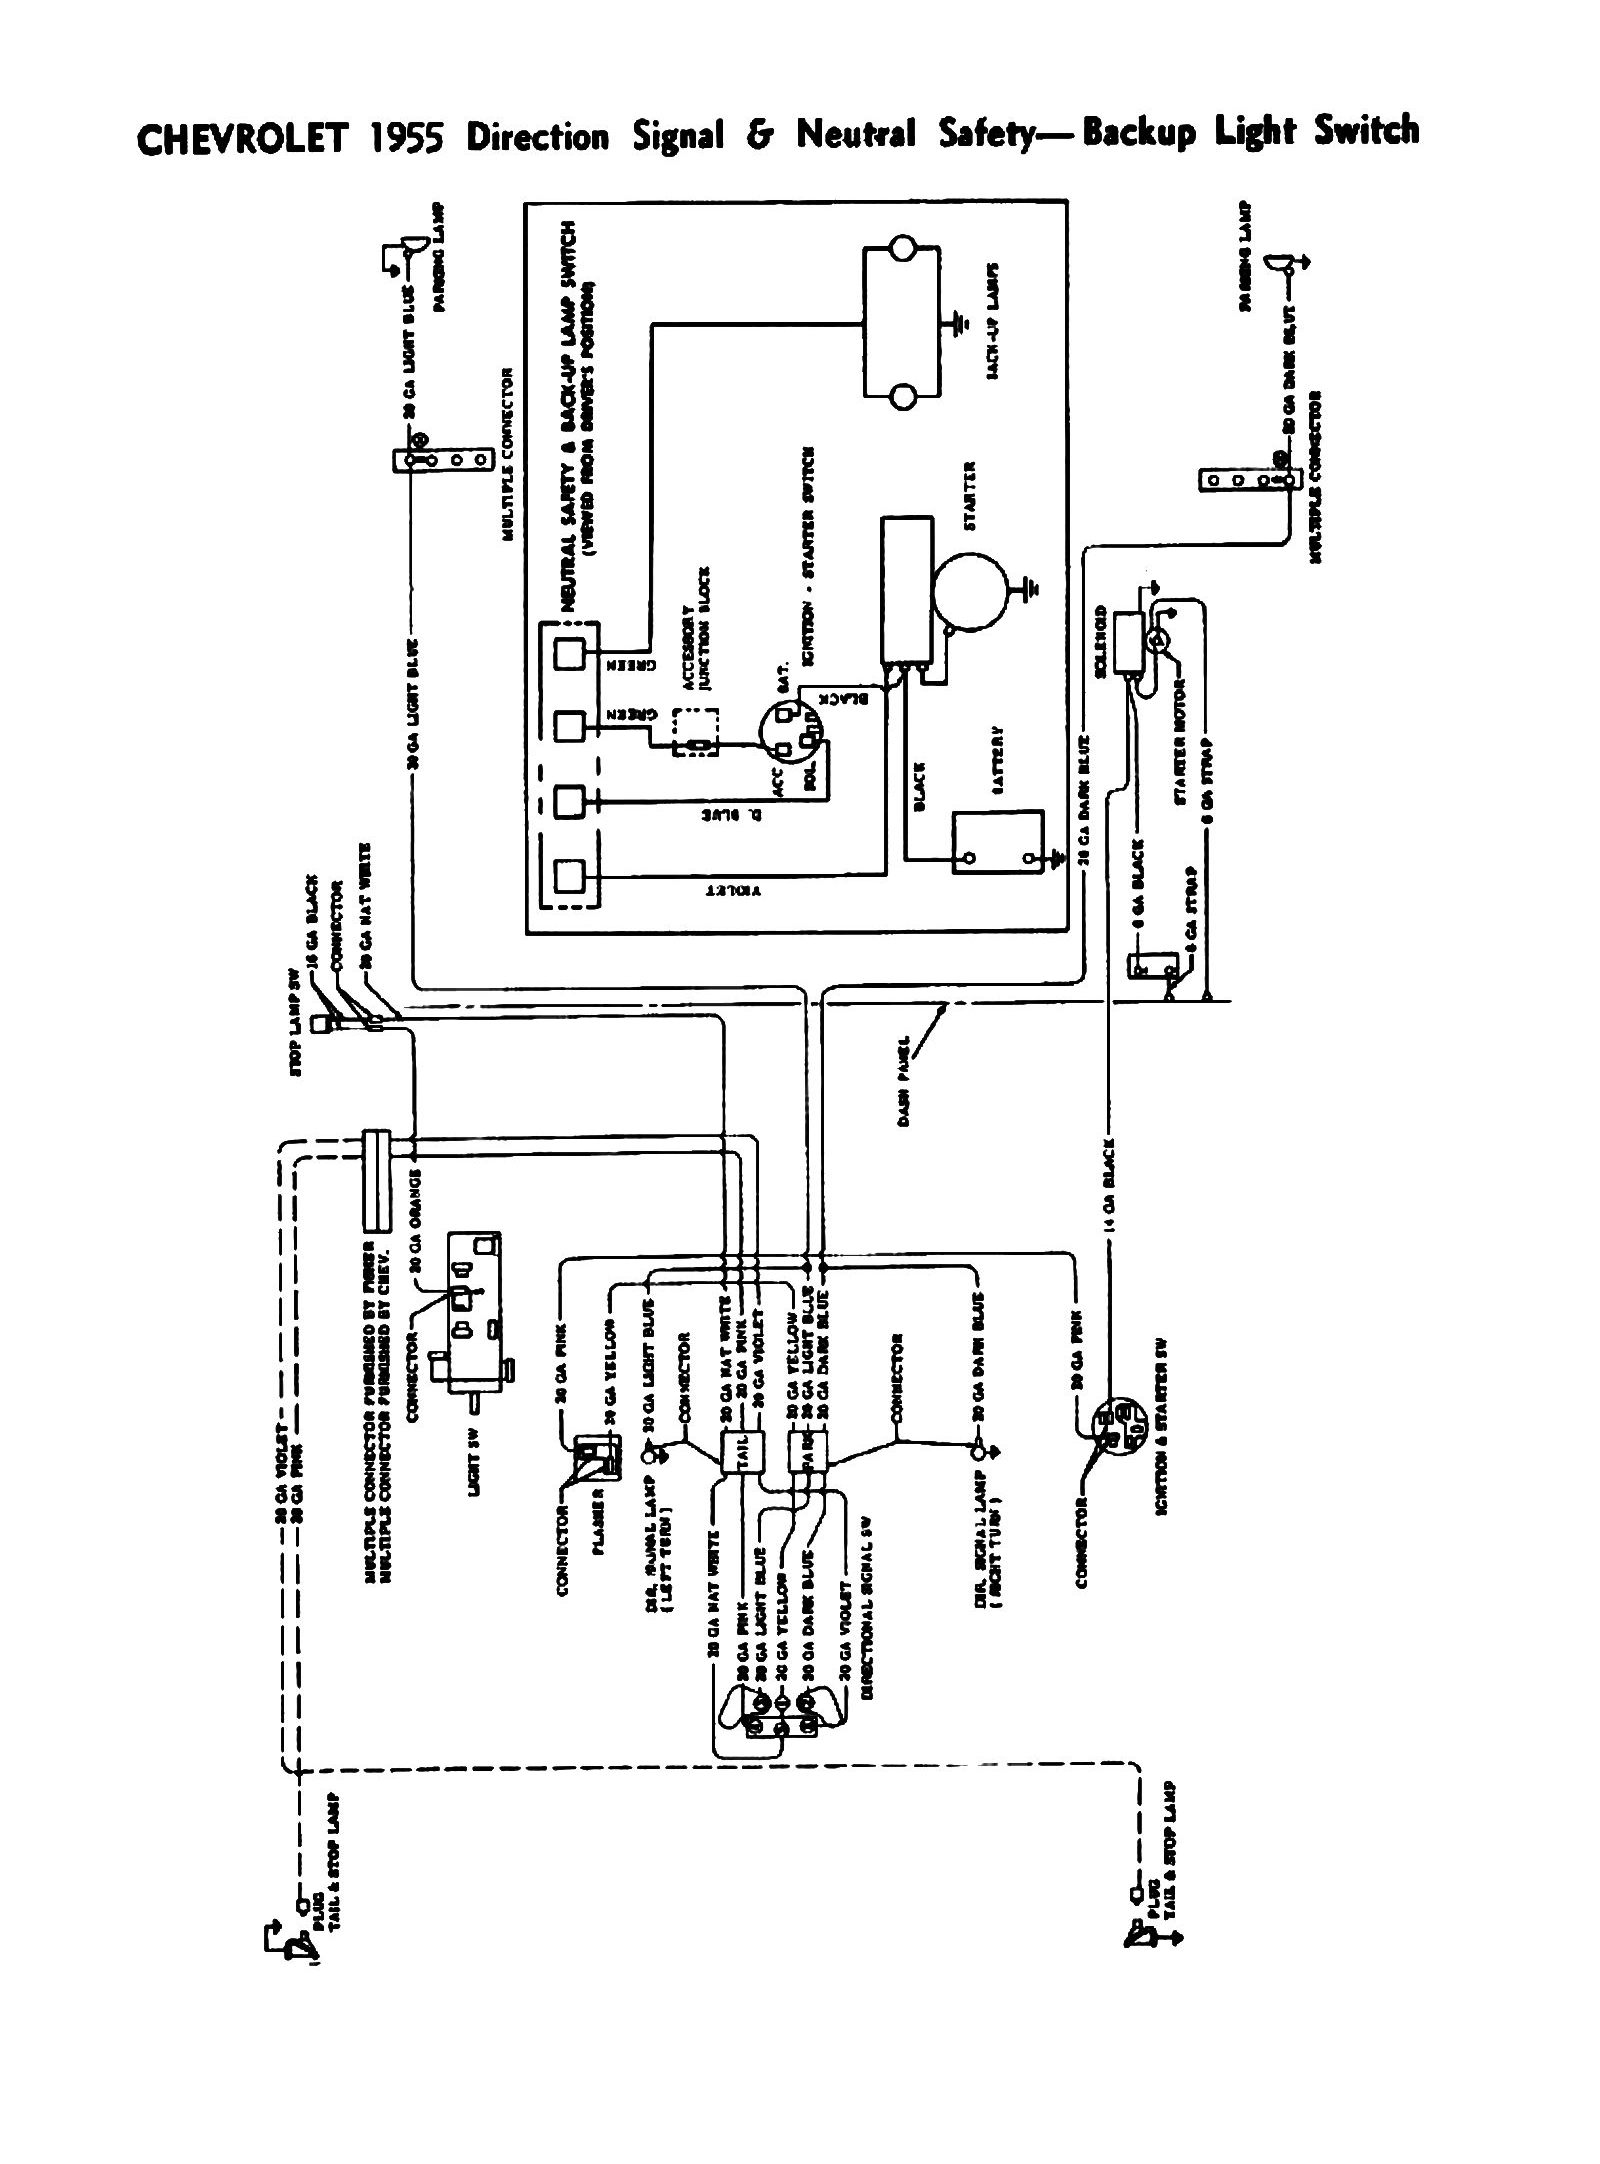 55signal wiring diagram for 1955 chevy bel air readingrat net Chevy Truck Wiring Diagram at bayanpartner.co